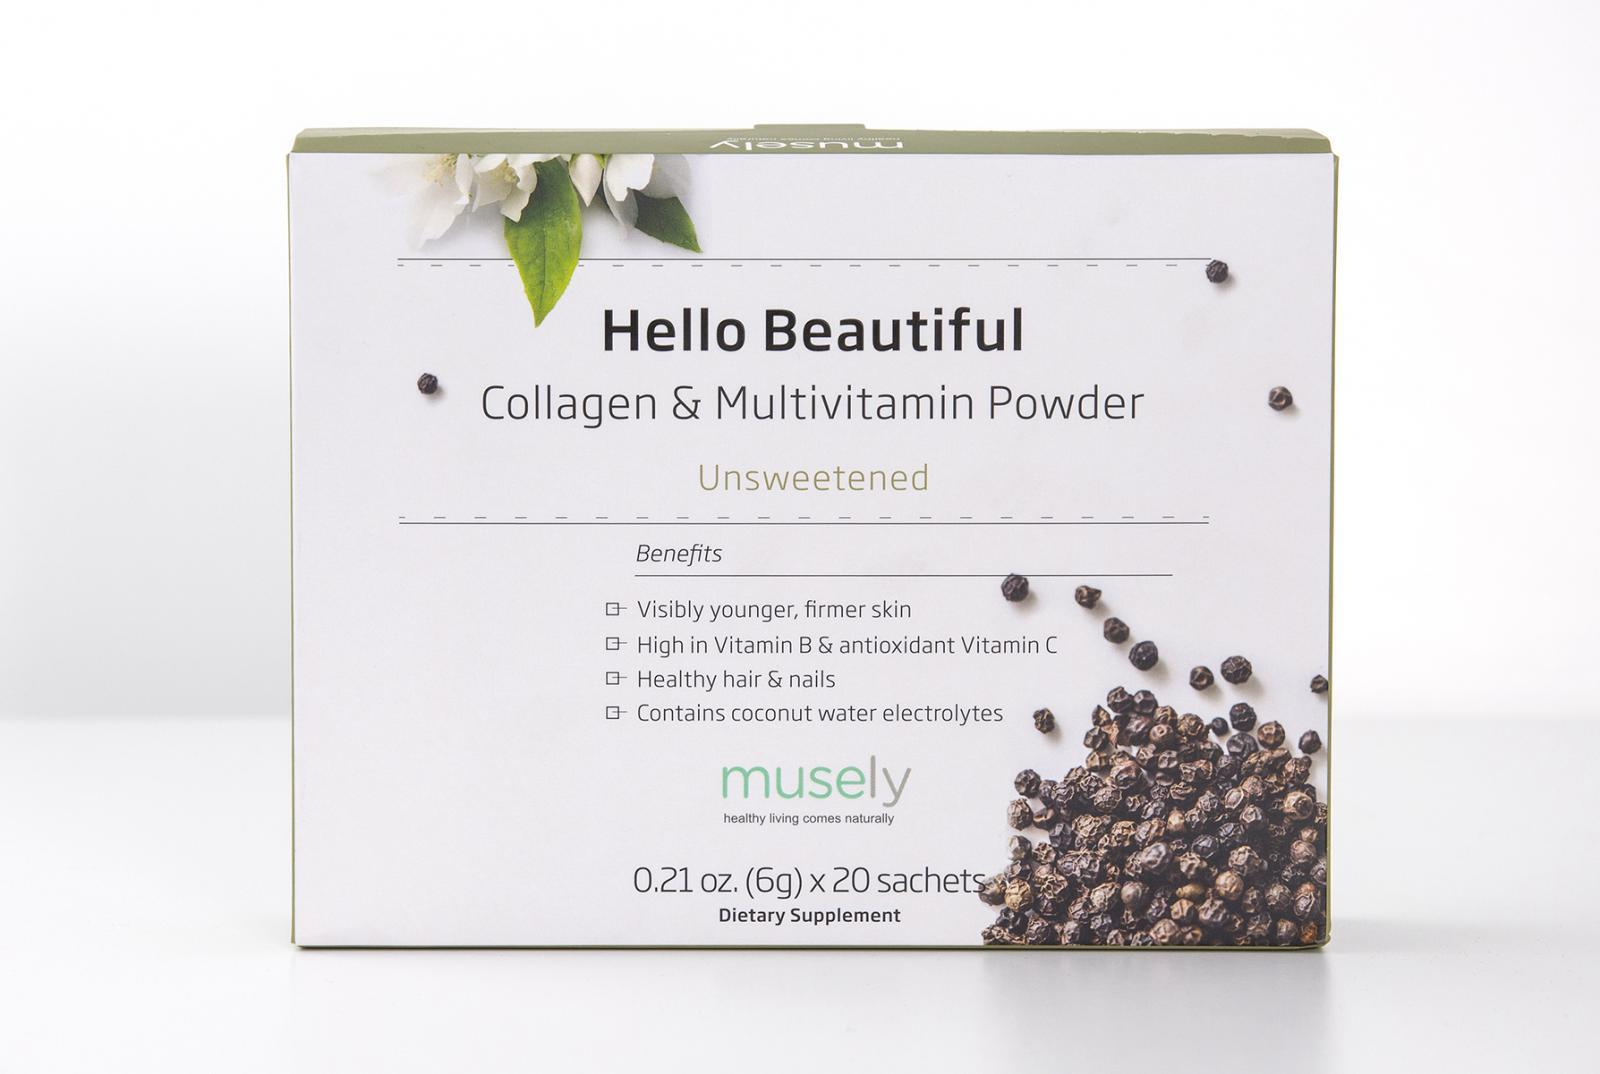 Hello Beautiful - Collagen & Multivitamin Powder (Box of 20)